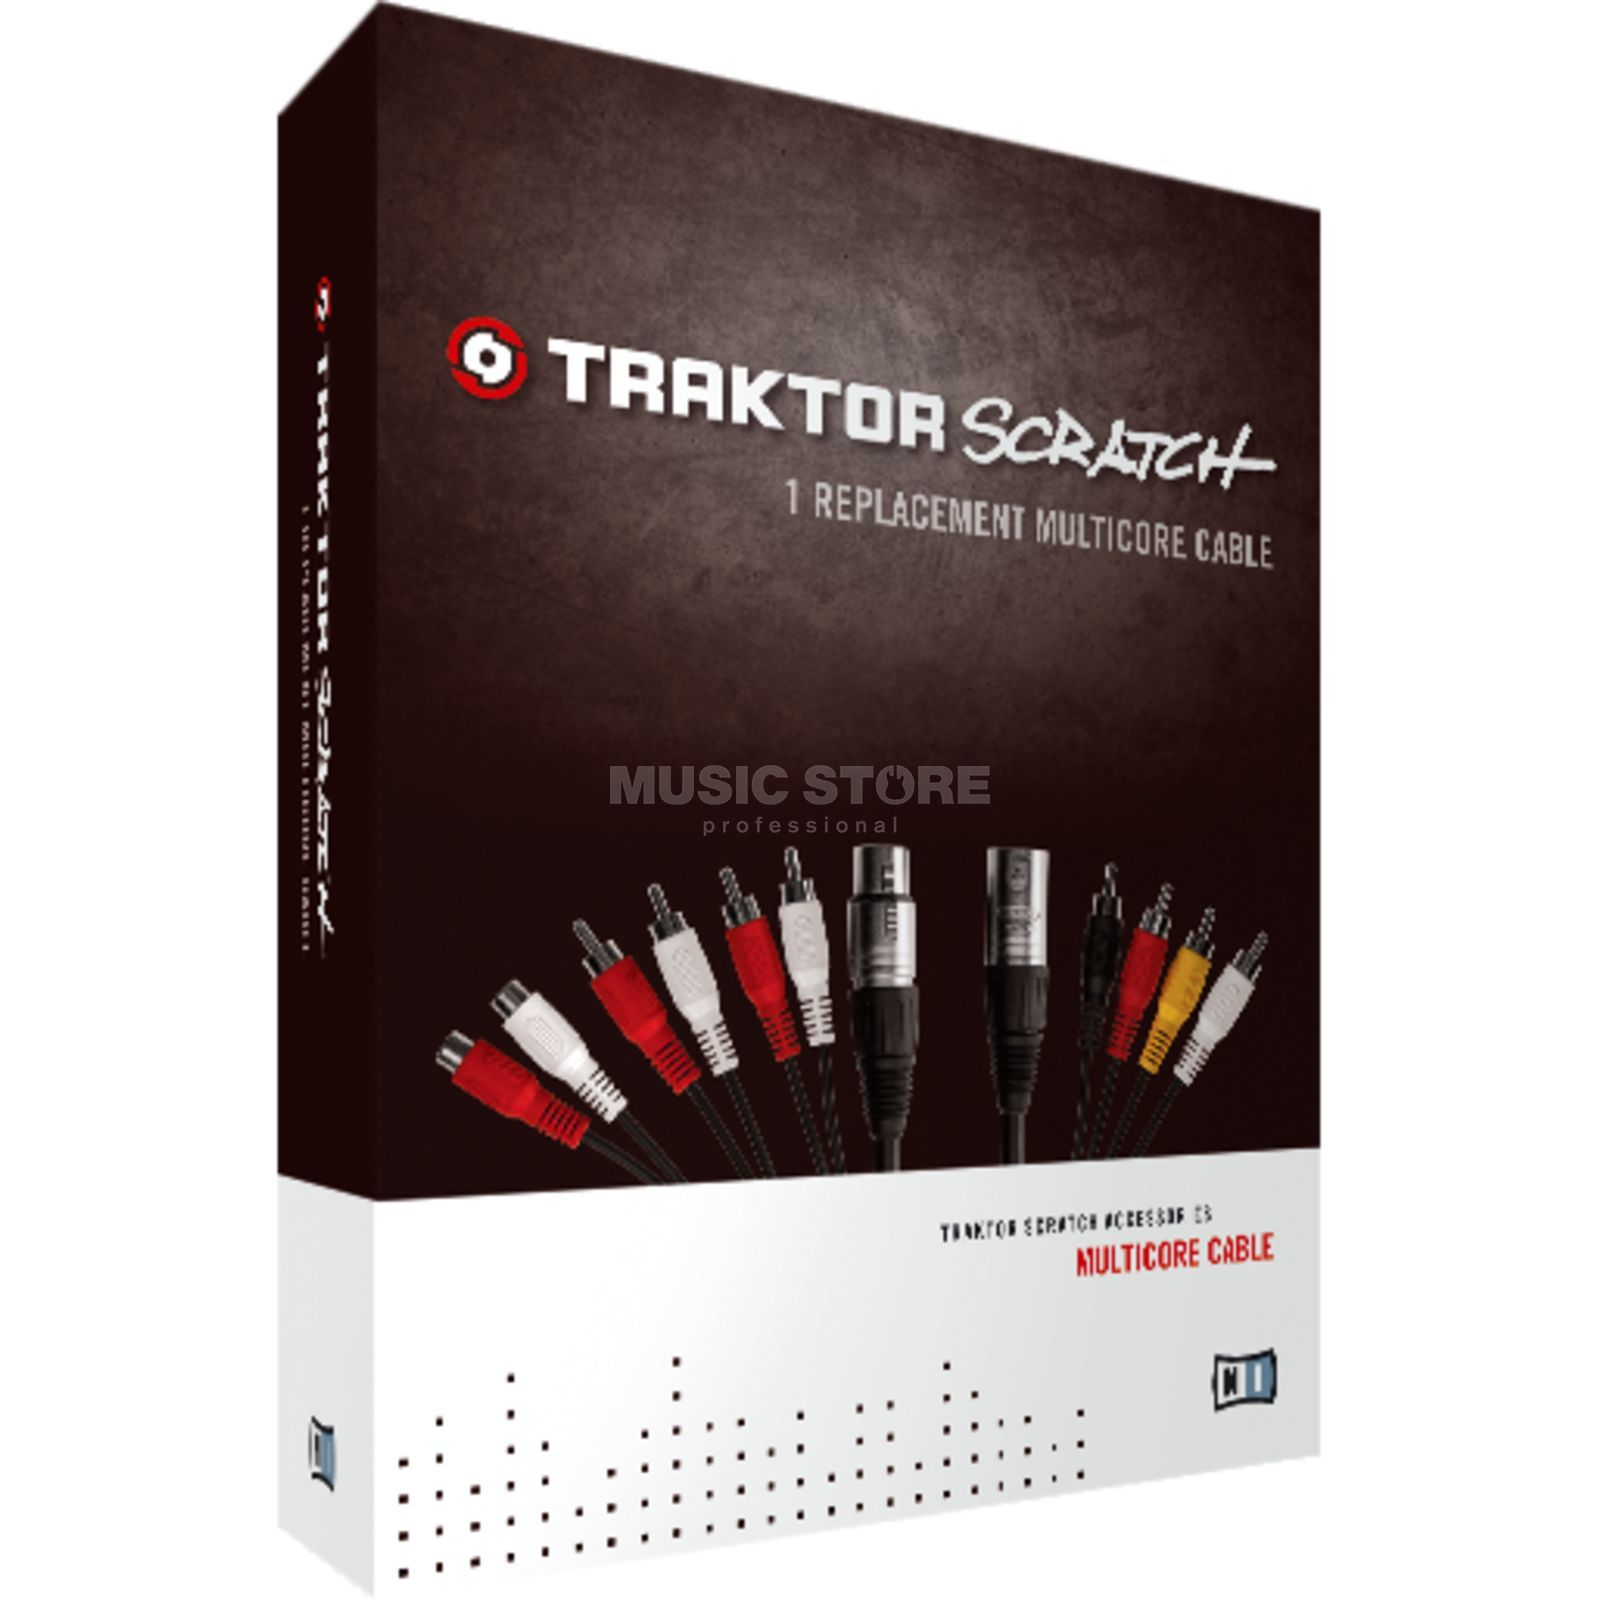 Native Instruments Traktor Scratch Multicore 1x Replacement Set Cable Product Image